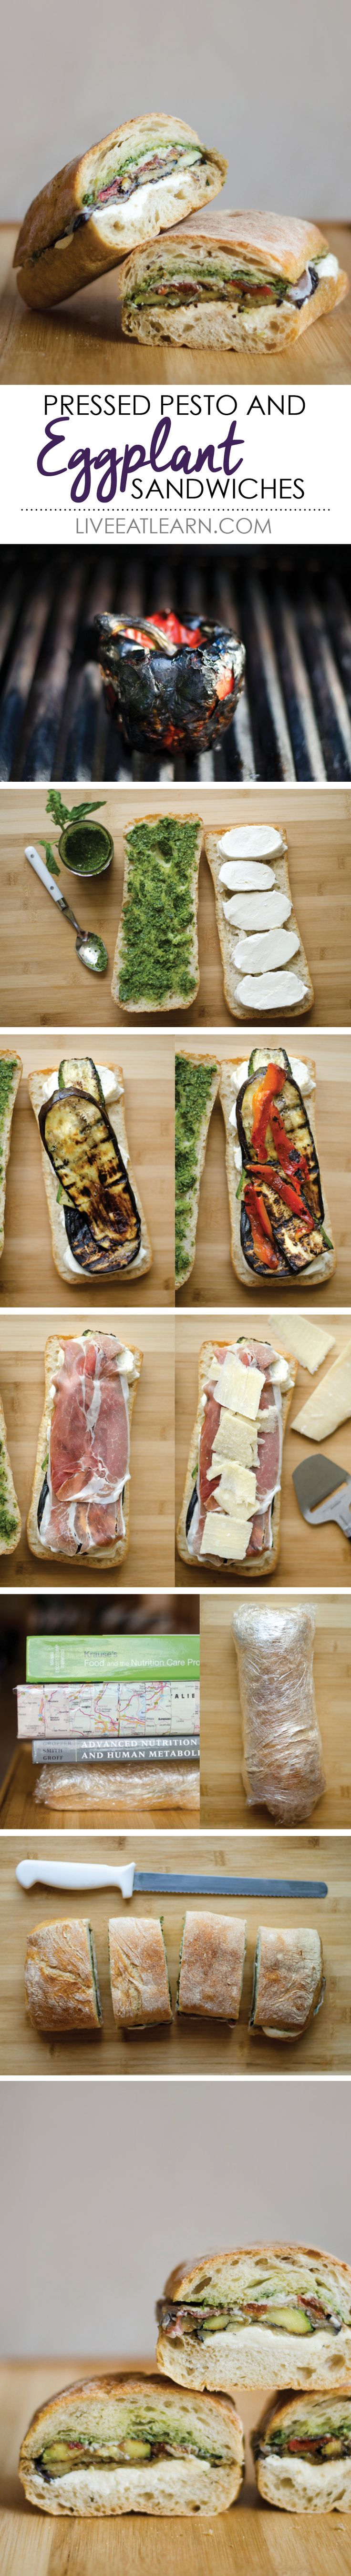 This pressed eggplant sandwich recipe piles in the taste. With pesto, mozzarella, roasted red bell peppers, fresh parmesan, and prosciutto, this recipe makes an easy and healthy dinner or lunch.